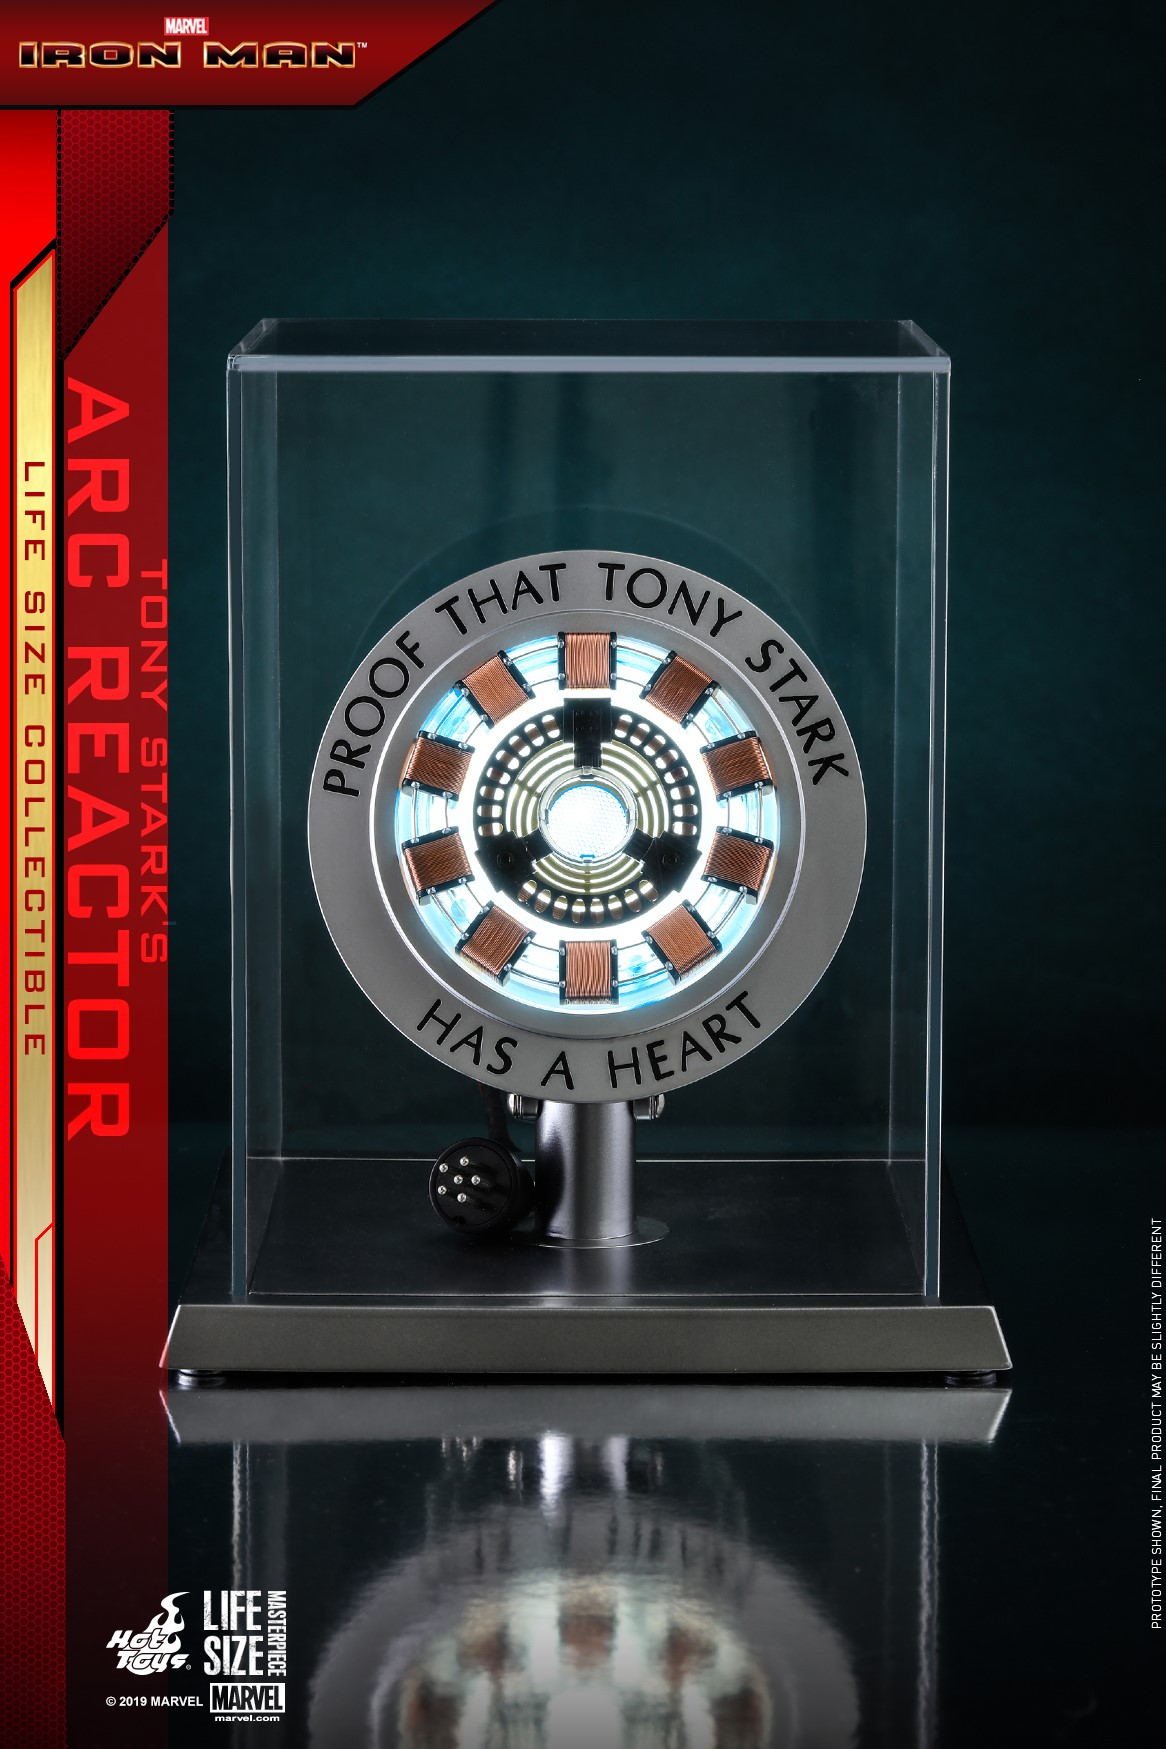 Iron Man - Tony Stark's Arc Reactor Life Size Collectible by